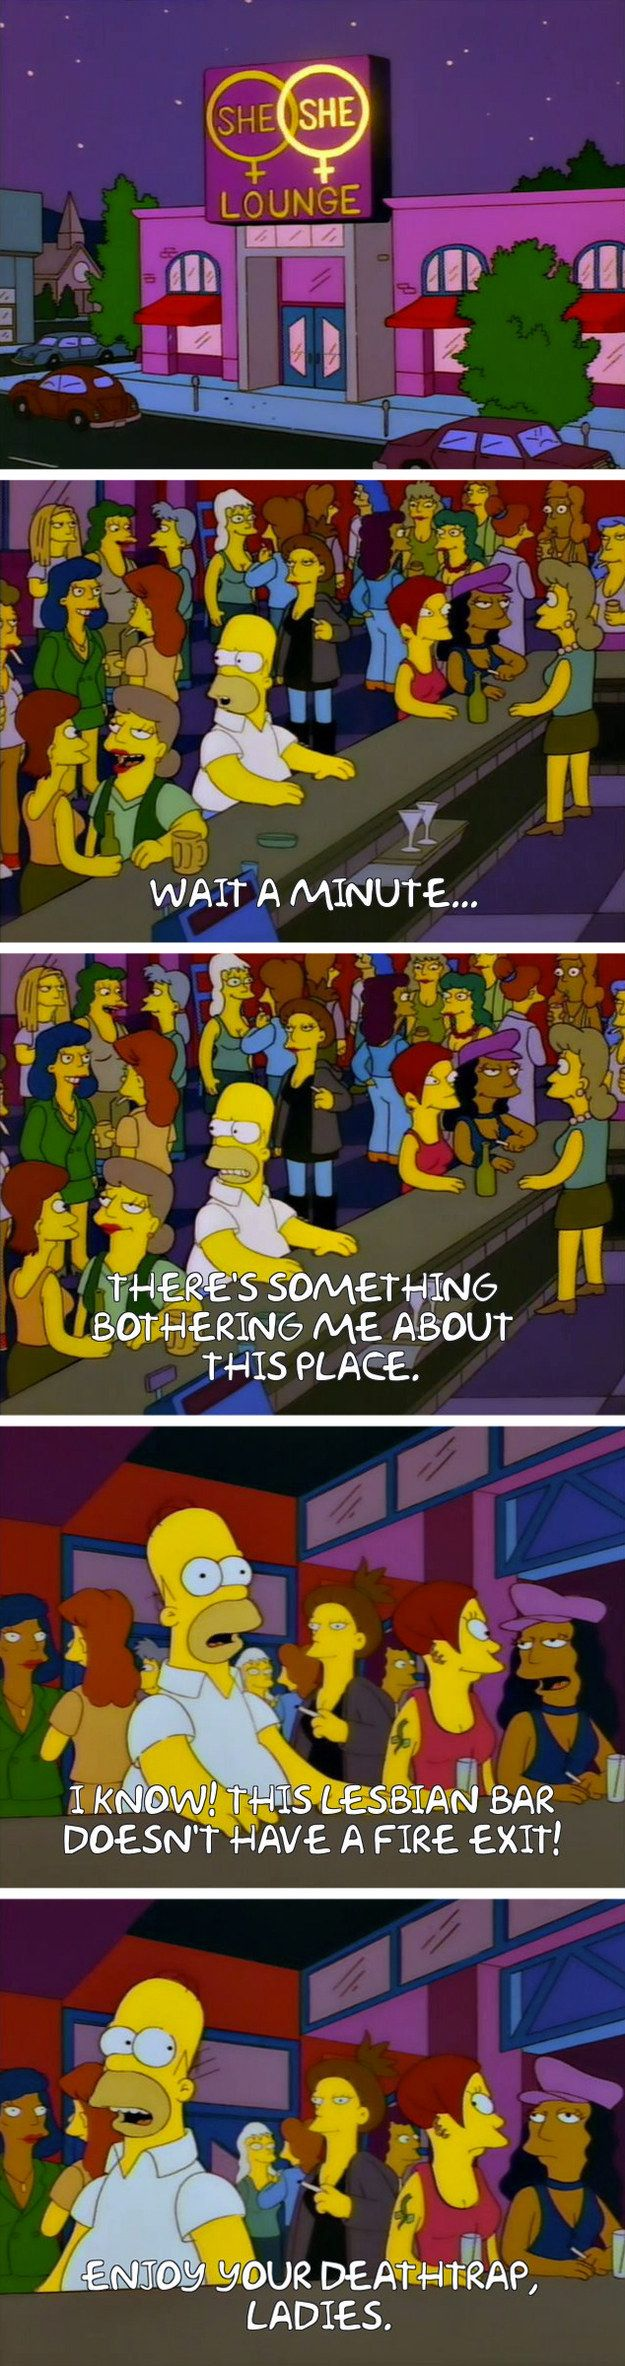 "From ""Fear of Flying"": 